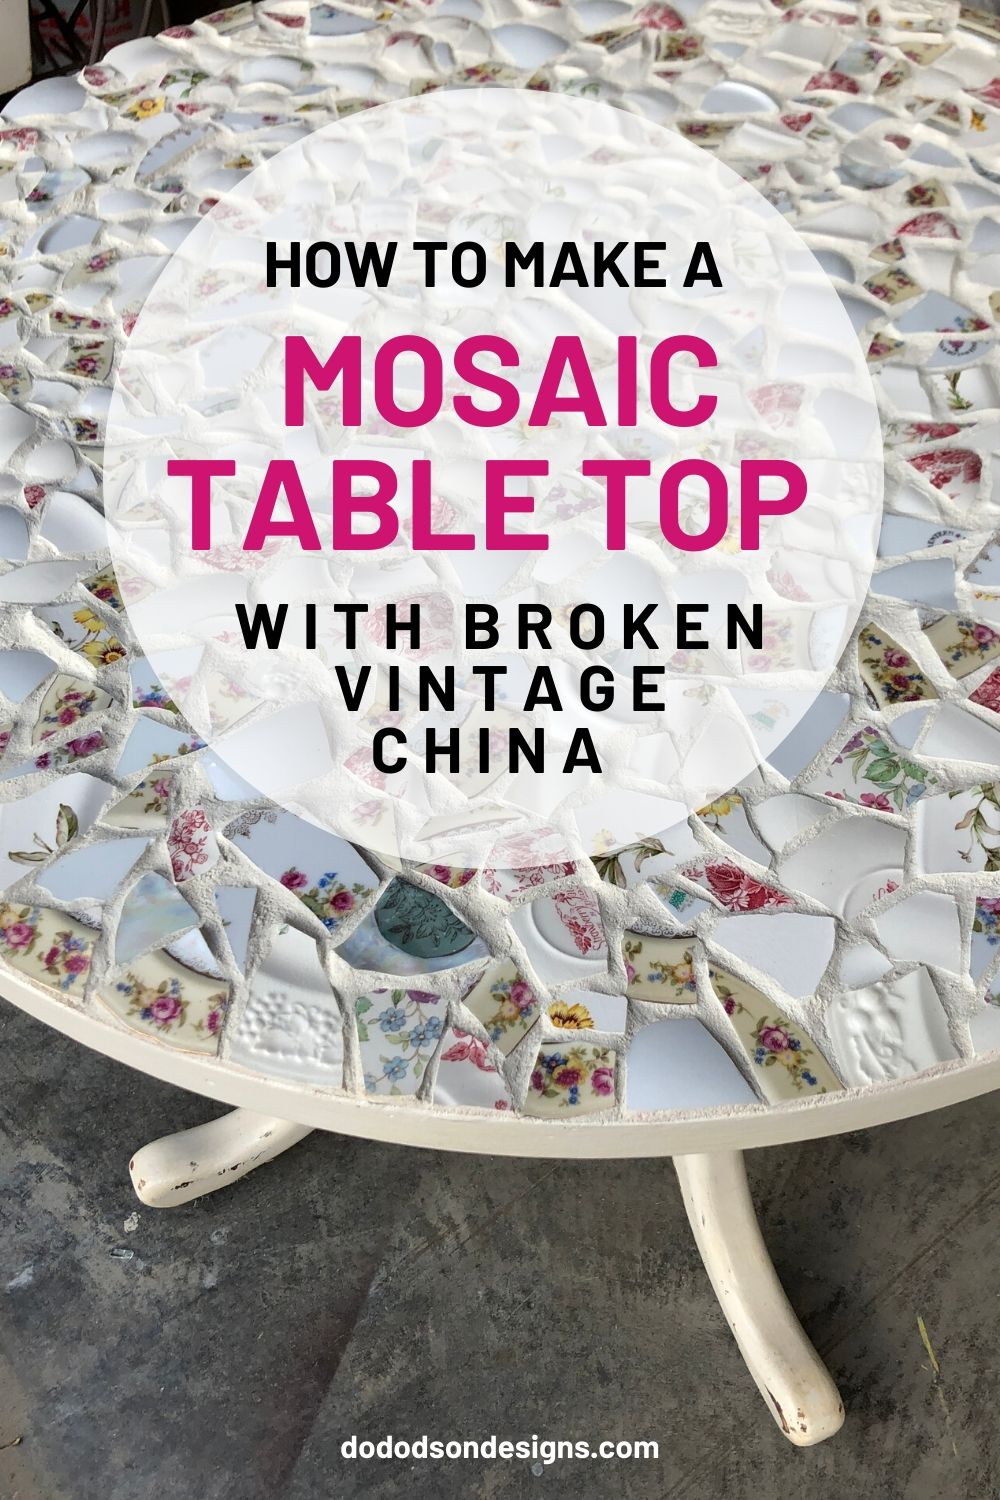 How To Make A Mosaic Table From Grandma's China